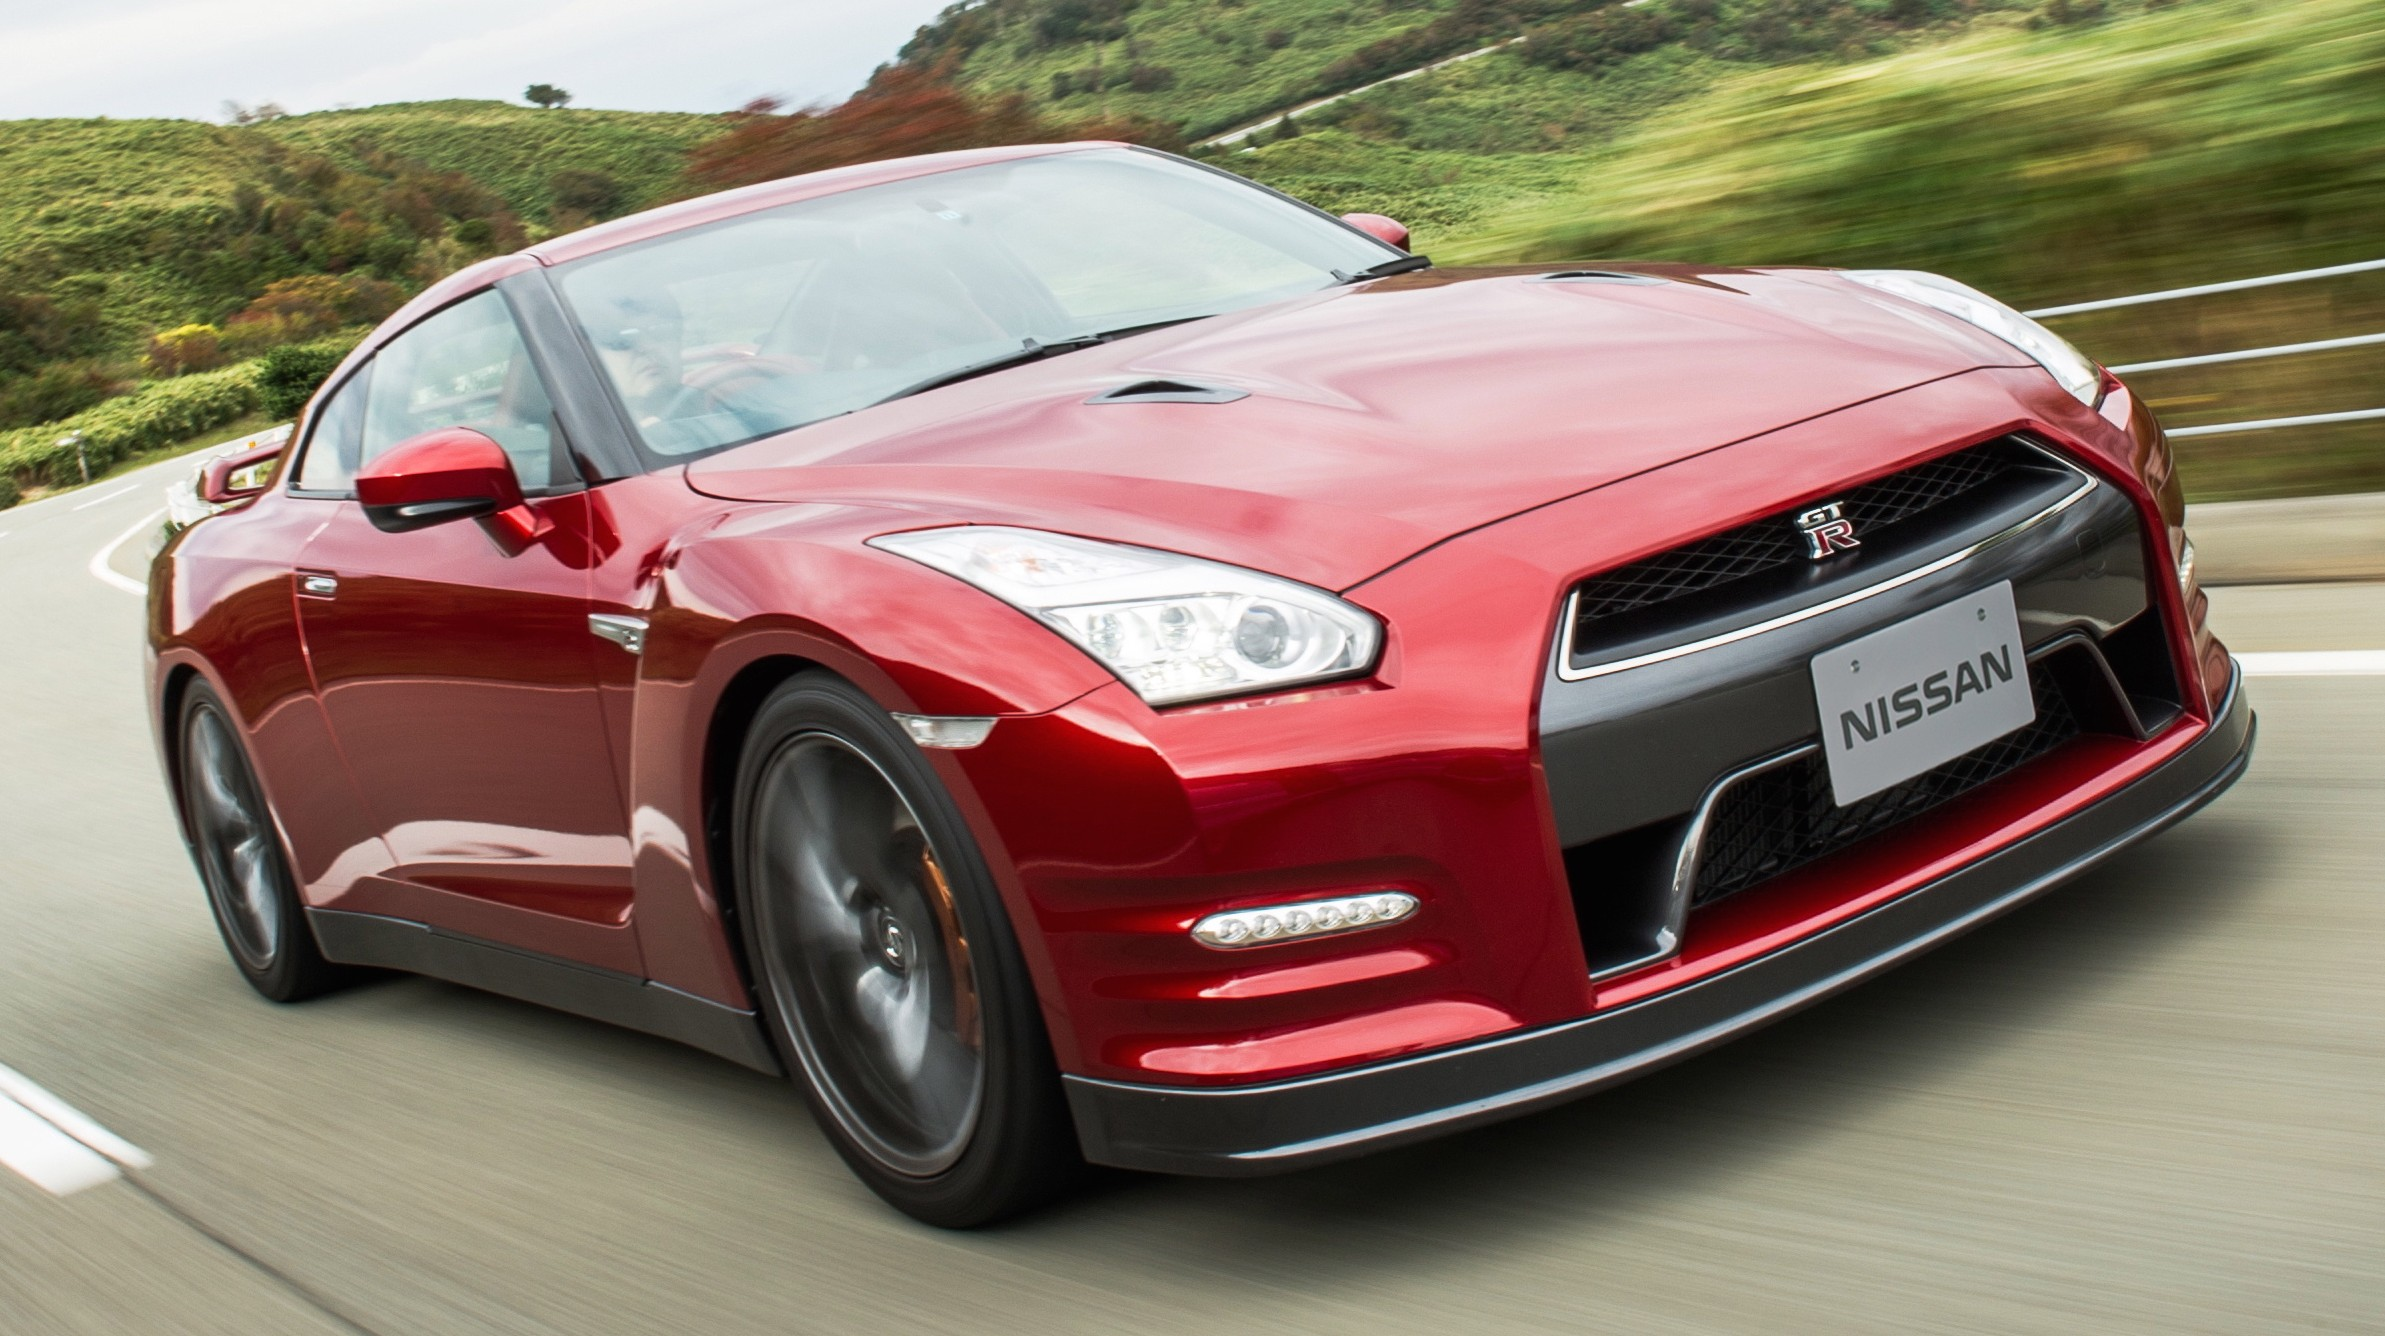 2017 nissan gt r to get around 700 hp report. Black Bedroom Furniture Sets. Home Design Ideas